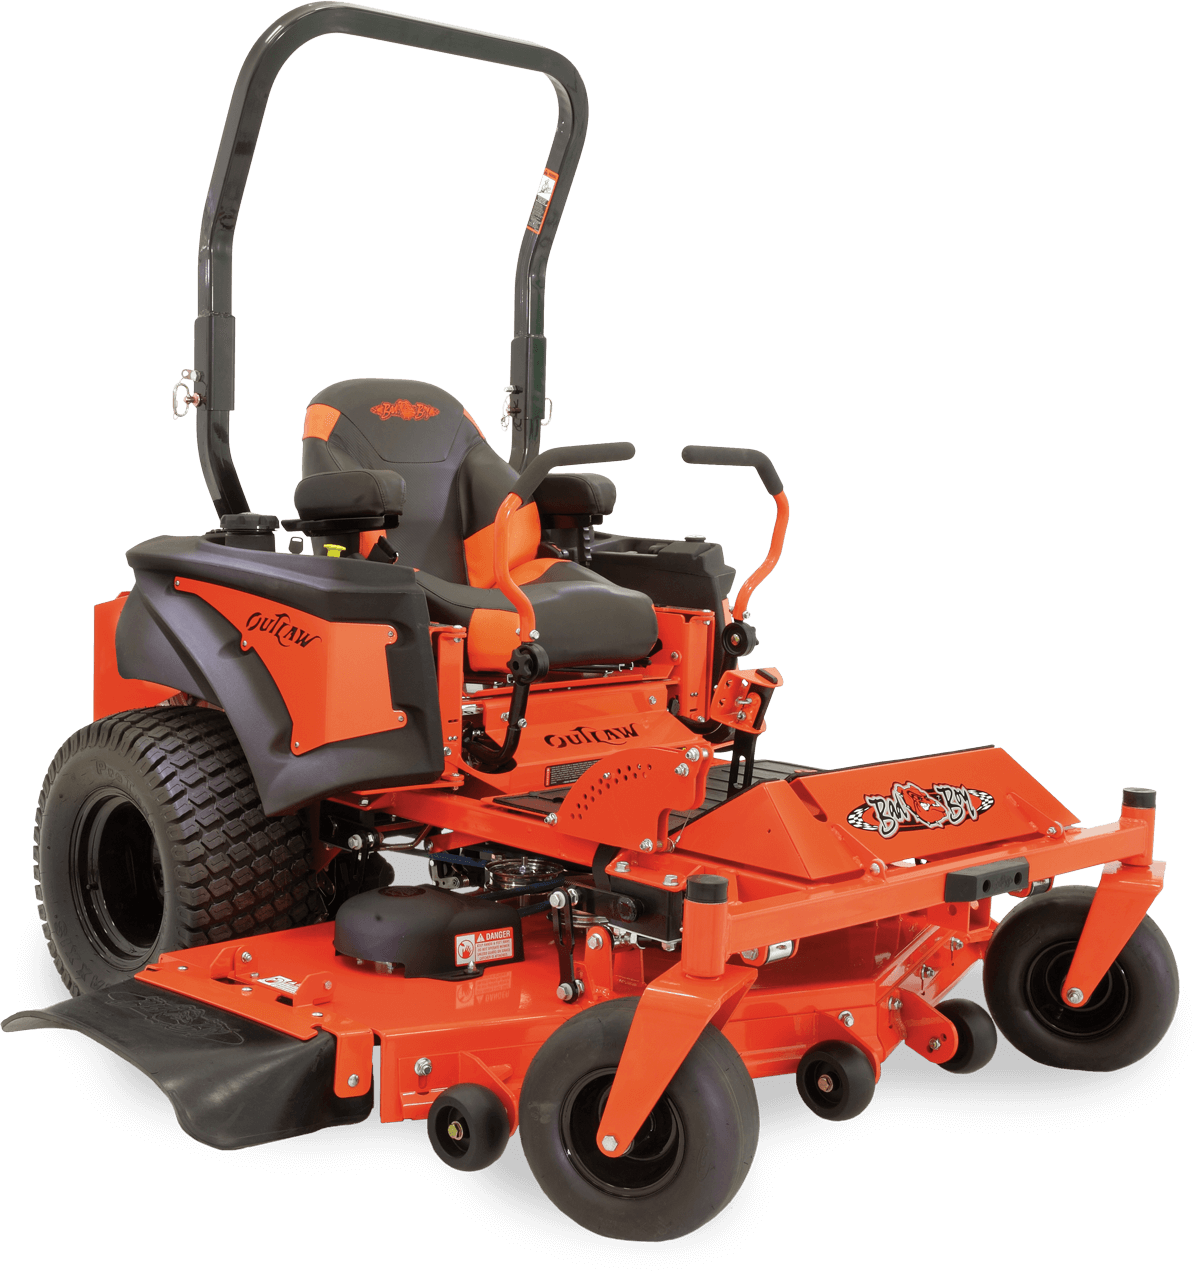 2016 Bad Boy Mowers 6100 (Vanguard) Outlaw Extreme in Mechanicsburg, Pennsylvania